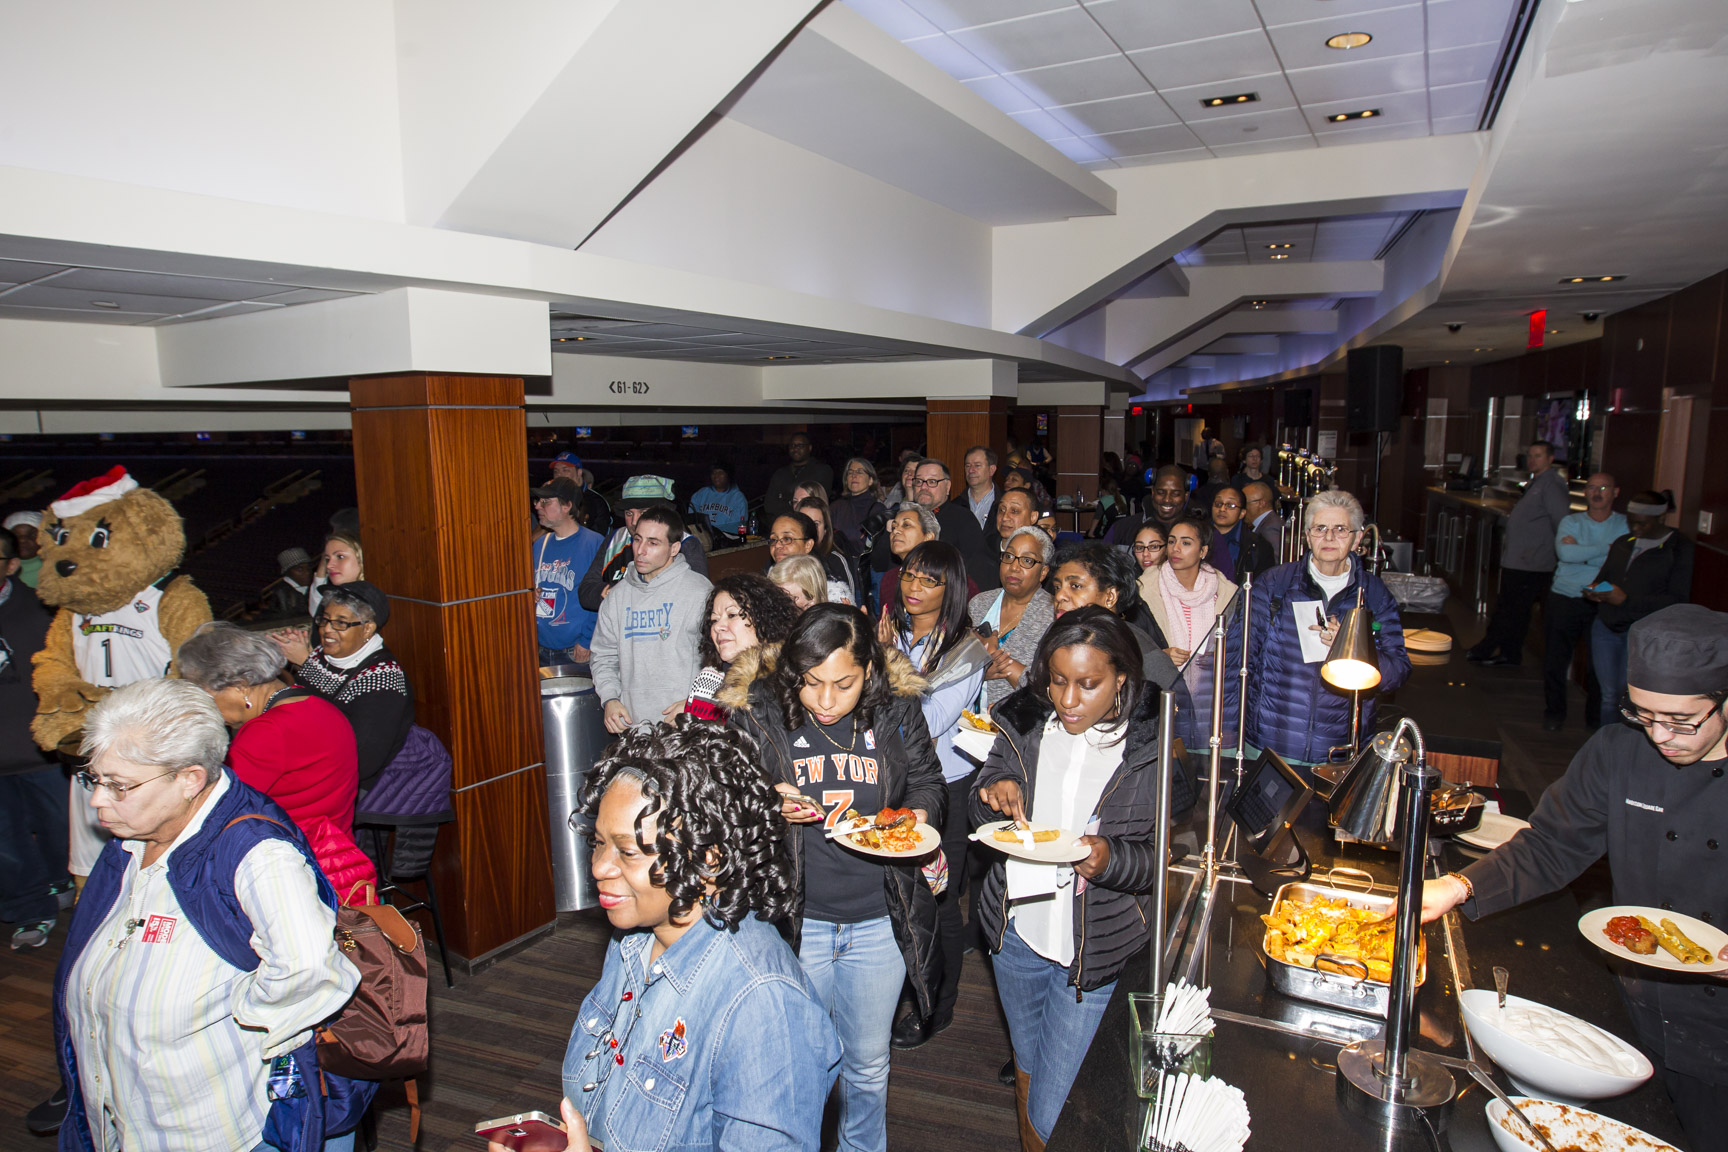 December 28, 2015: The New York Liberty host a holiday party for season subscribers in the Madison Club prior to the Maggie Dixon Classic at Madison Square Garden, with special guests Teresa Weatherspoon and Swin Cash.